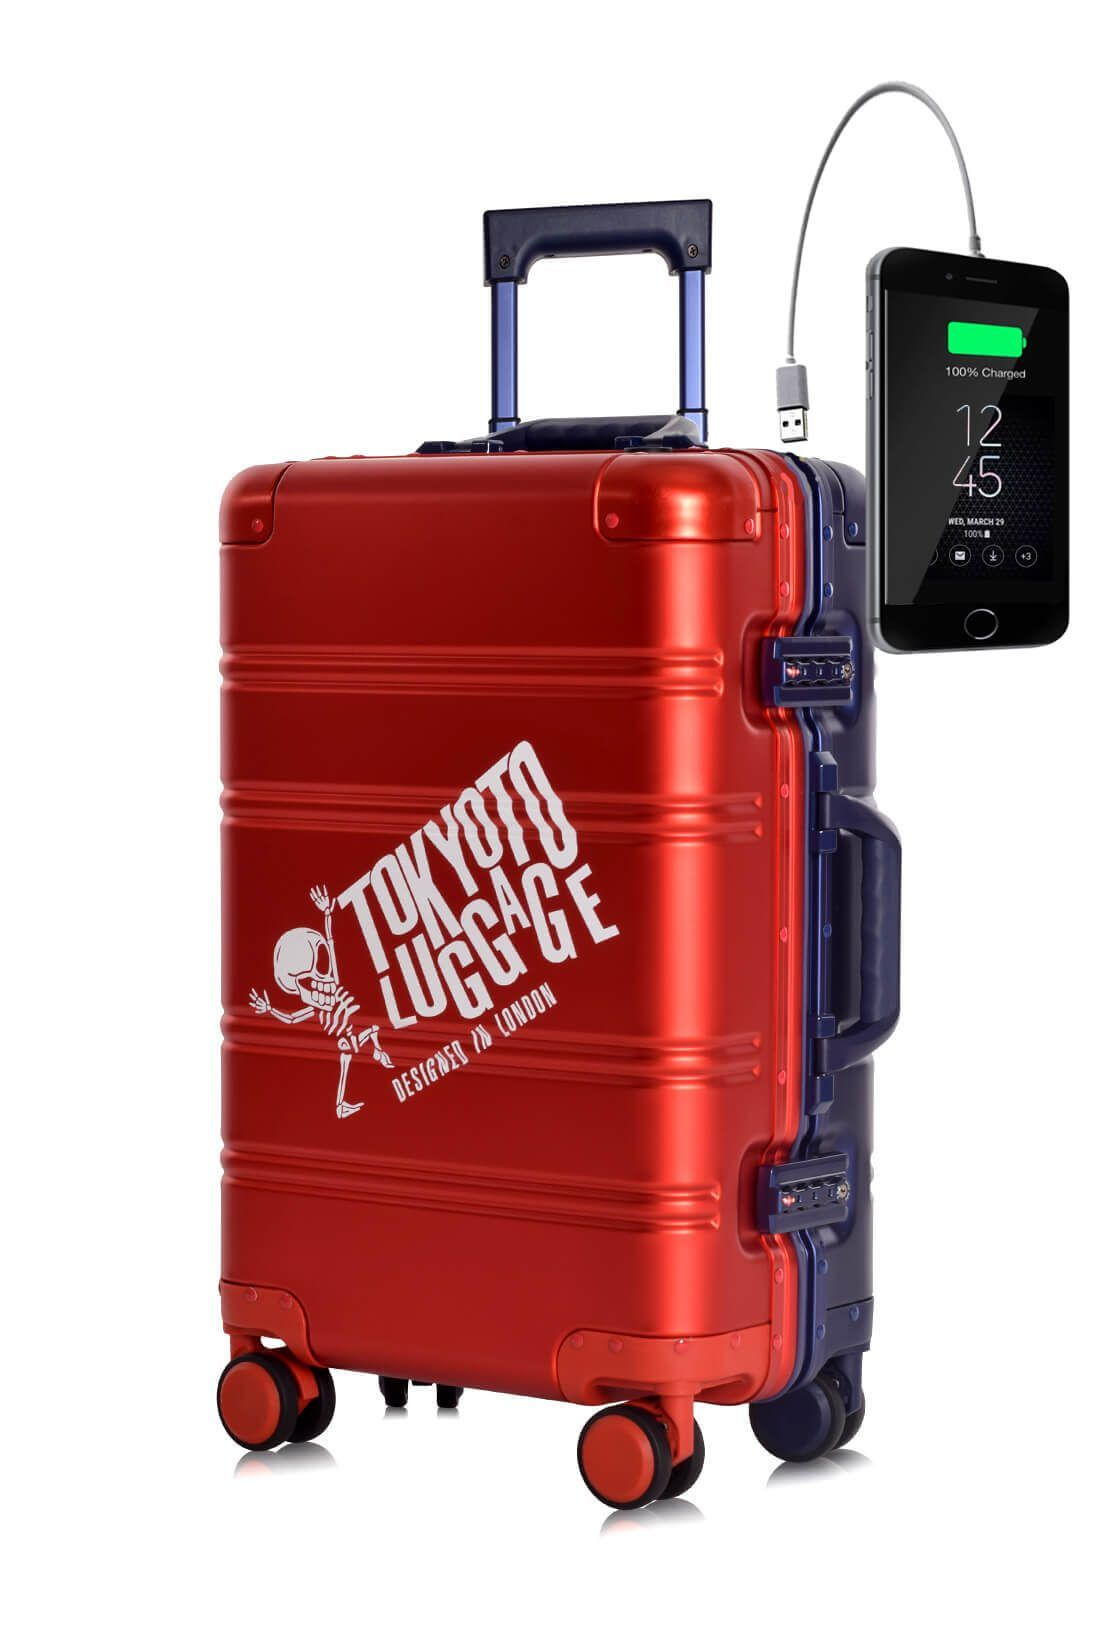 Aluminum Metal Hand Trolley Cabin Luggage Suitcase Online Powerbank USB Charger TOKYOTO RED BLUE LOGO